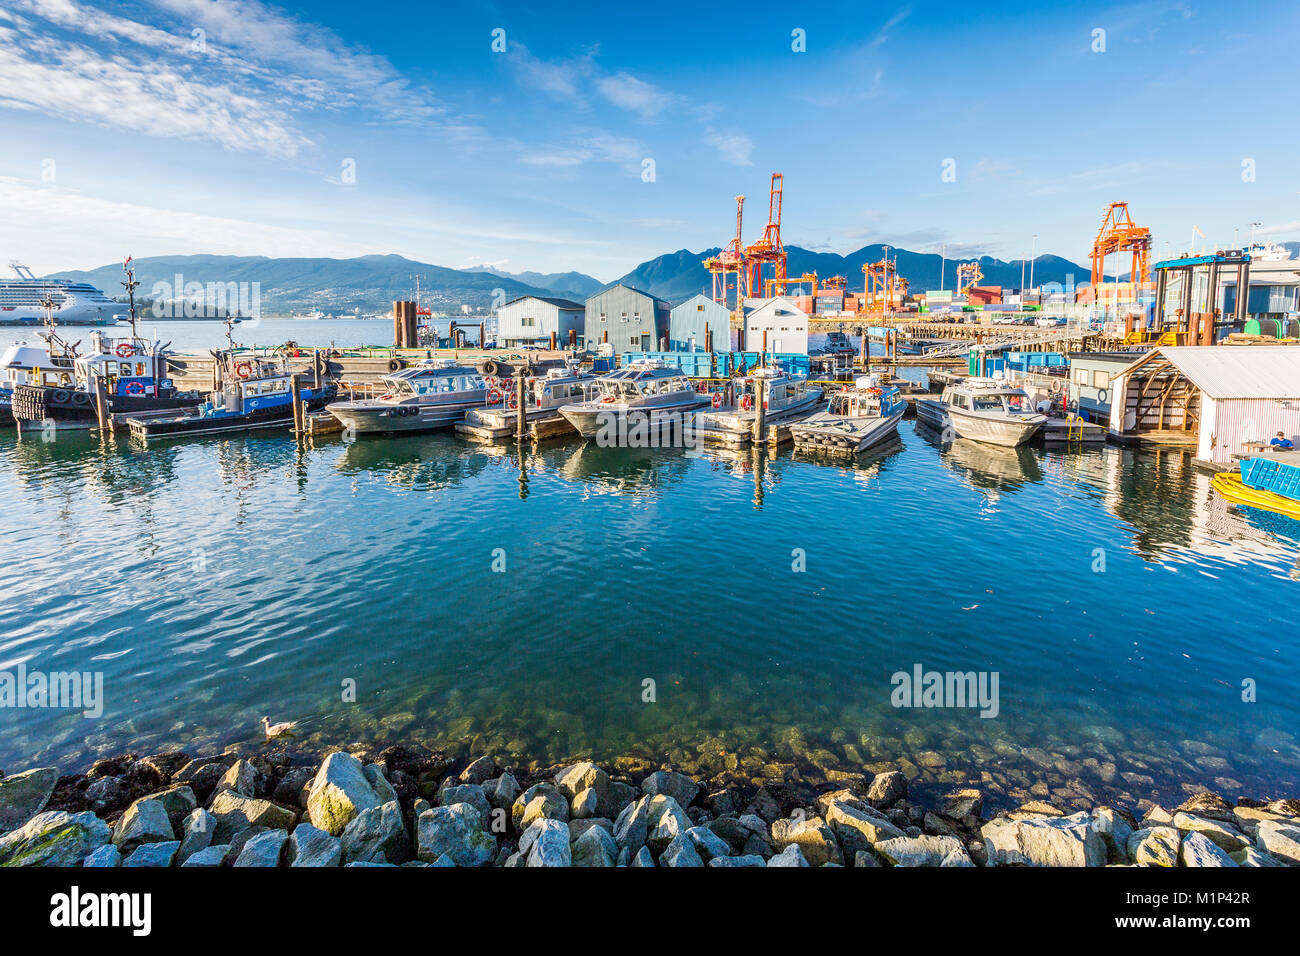 View of cruise ship and boats moored in harbour near CRAB Park at Portside, Vancouver, British Columbia, Canada, - Stock Image